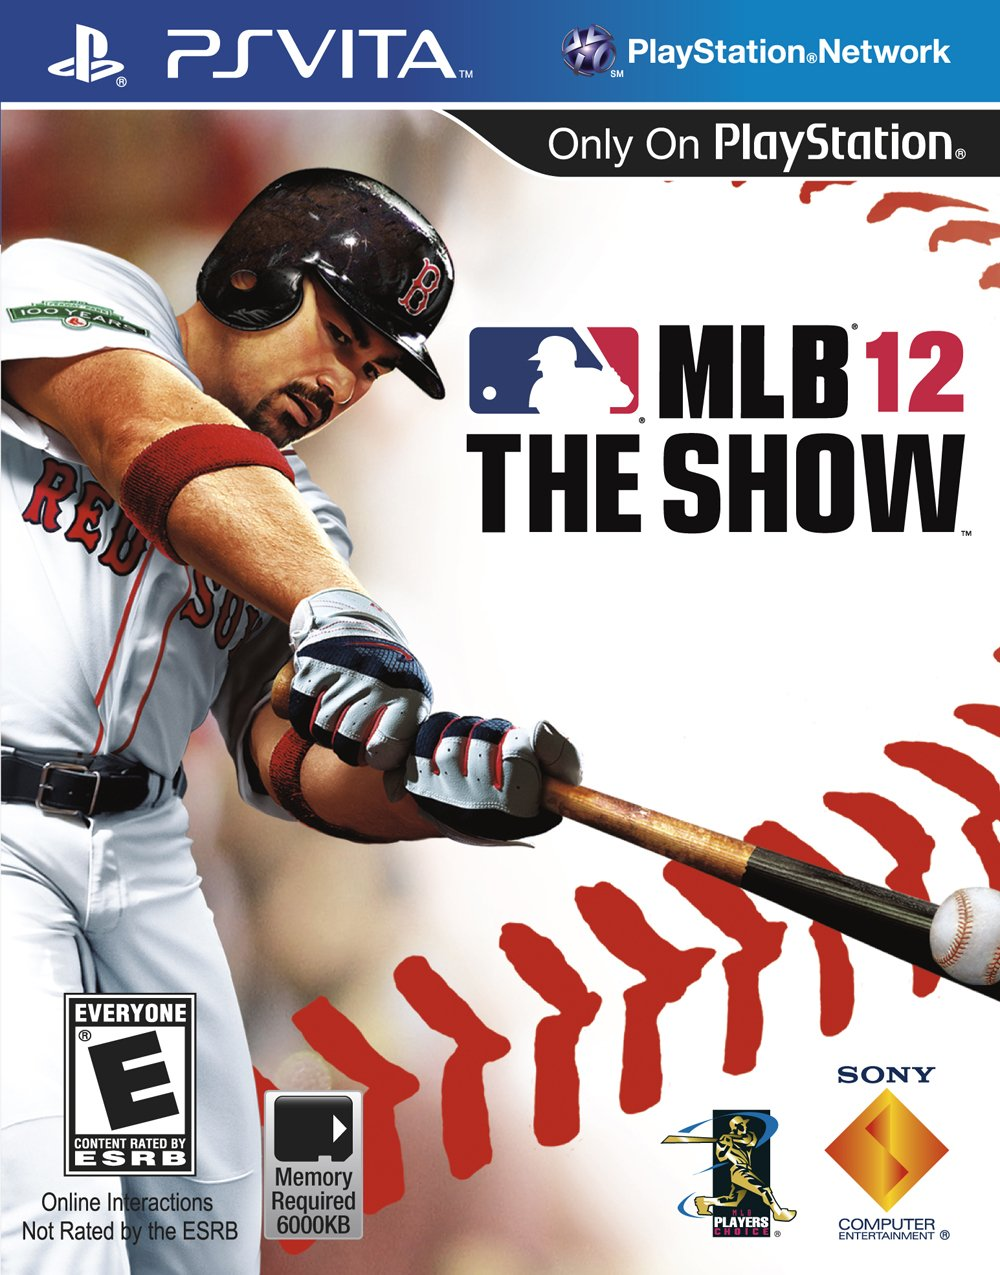 PS Vita - MLB 12 The Show